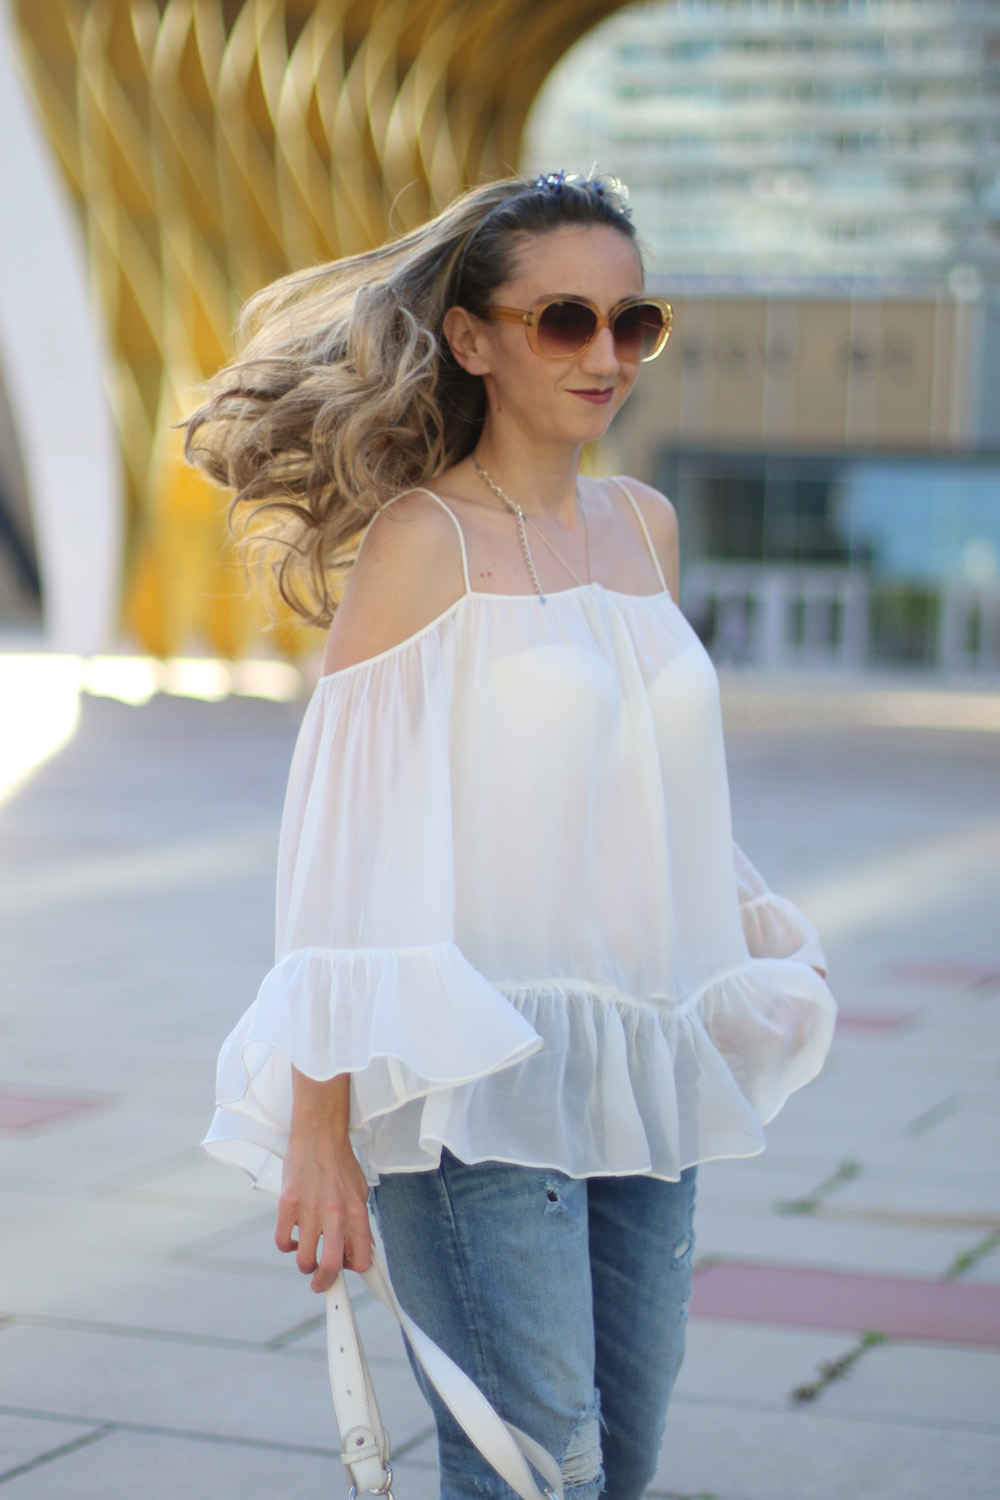 colourclub-fashionblog-outfit-off-the-shoulder-top-jeans-furla-bag-austria-center1